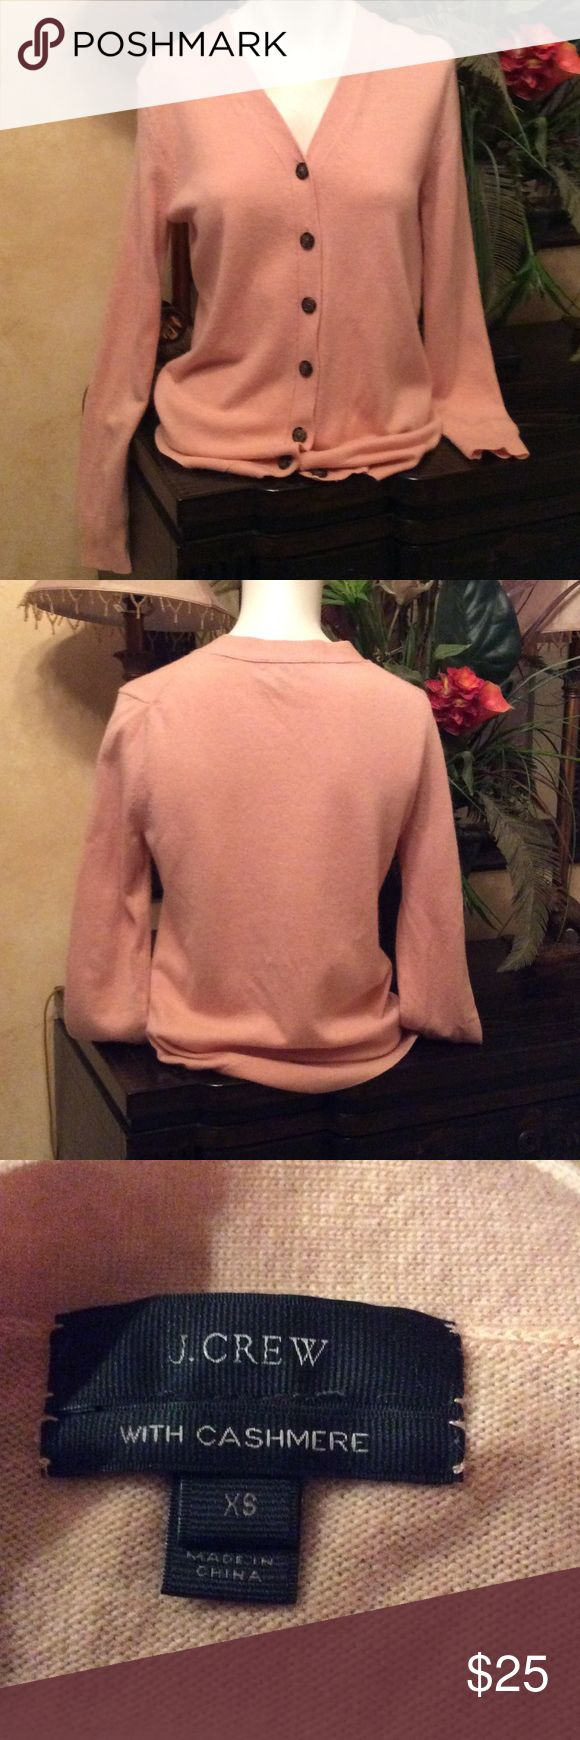 J. Crew Sweater Cardigan button down size XS J. Crew Sweater with Cashmere ladies v neck button down Size XS. 55% wool 30% cotton 12% cashmere color pink .excellent condition J. Crew Sweaters Cardigans